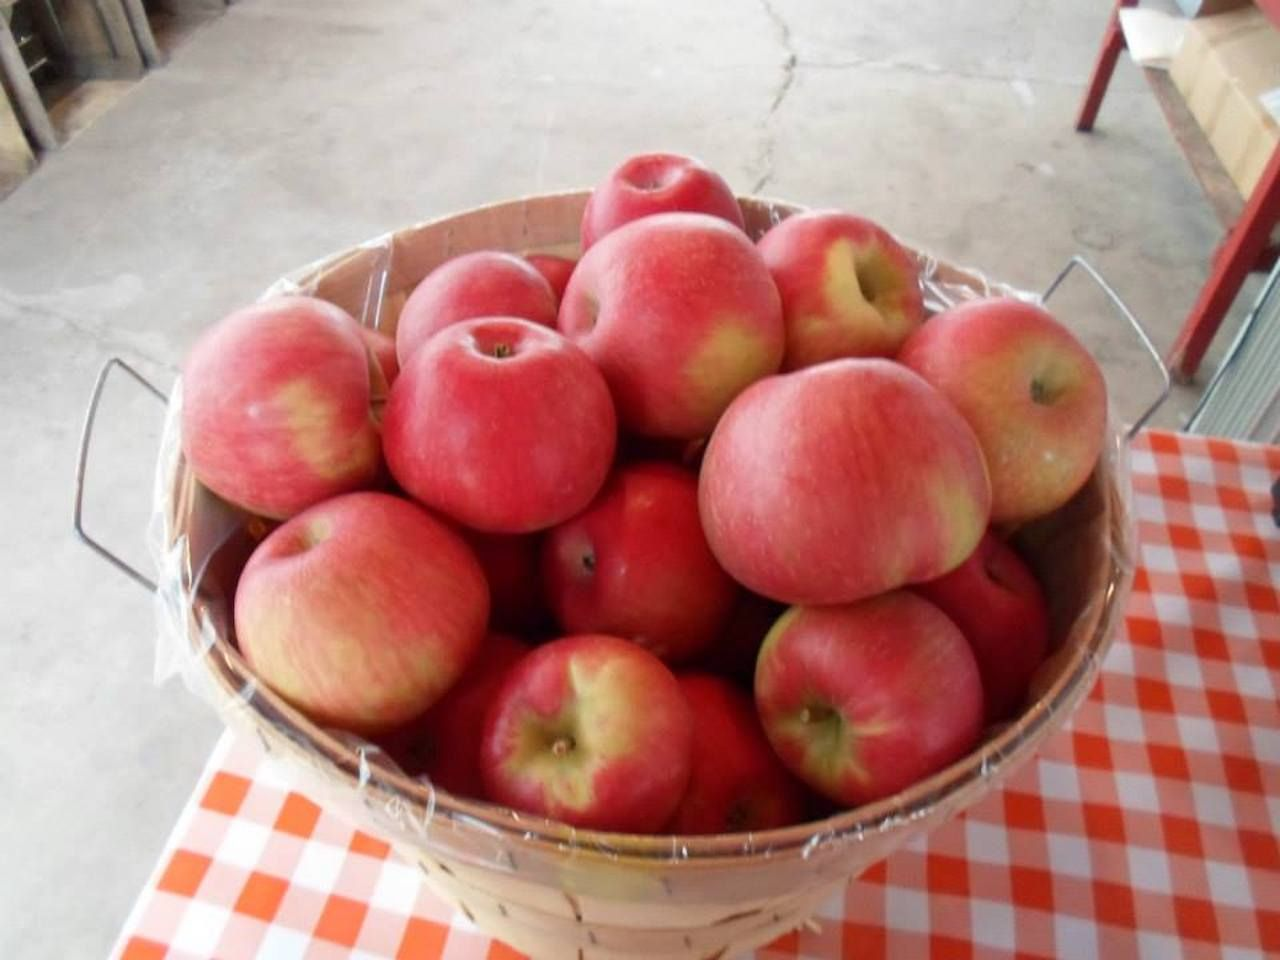 A basket of apples at the Rennie apple orchard in Michigan